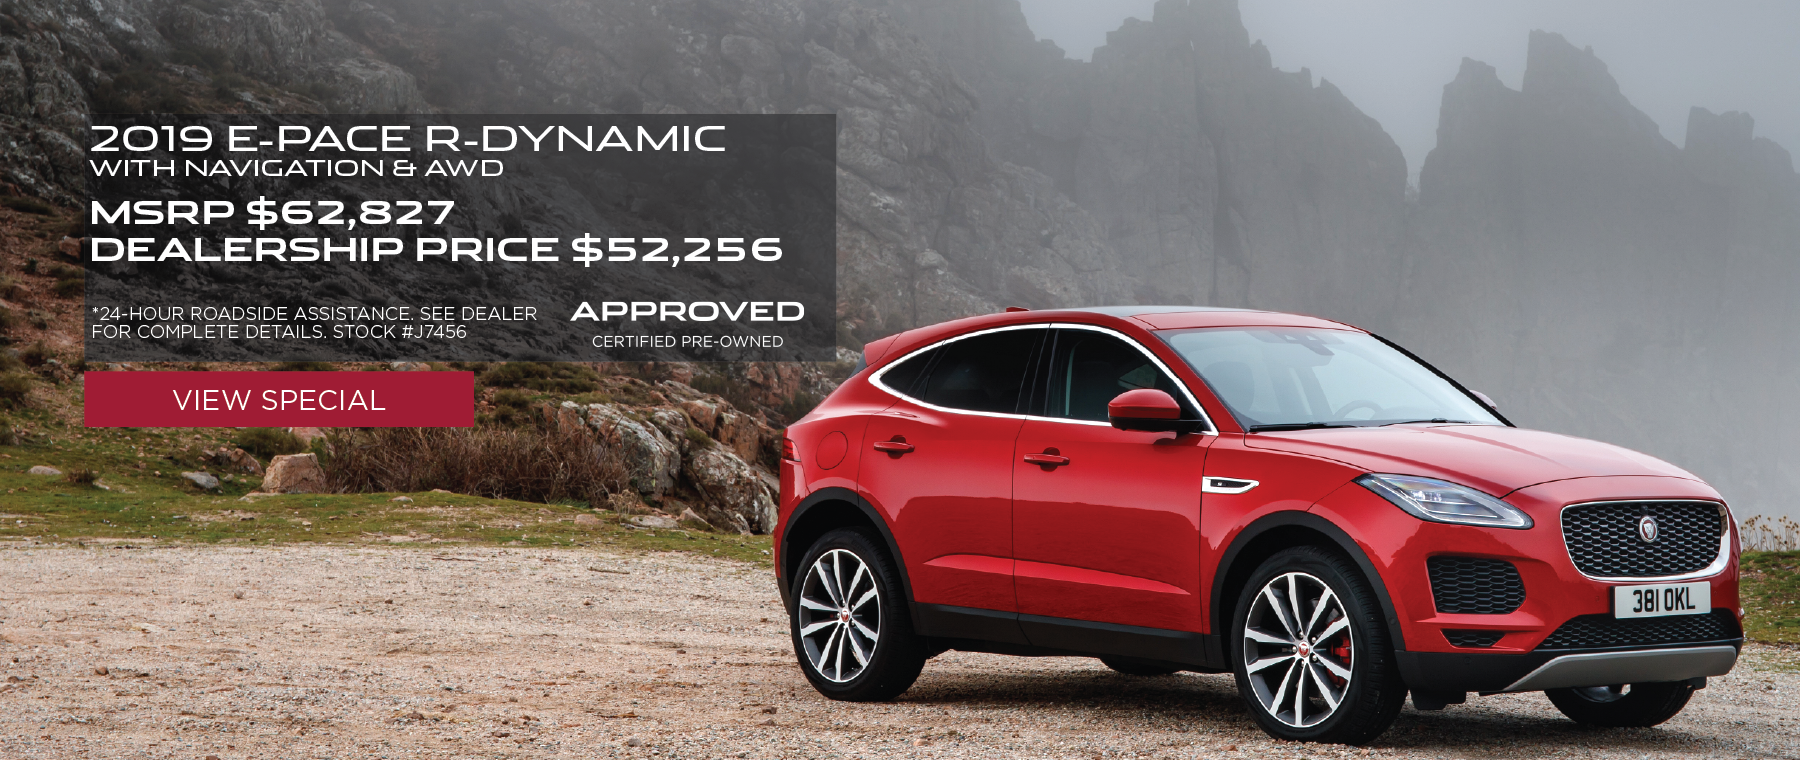 Stock #J7456 – Red 2019 E-PACE R-Dynamic with Navigation & AWD in front of mountains. MSRP - $62, 827 Dealership Price - $52,256. See dealer for complete details. *24-hour roadside assistance.